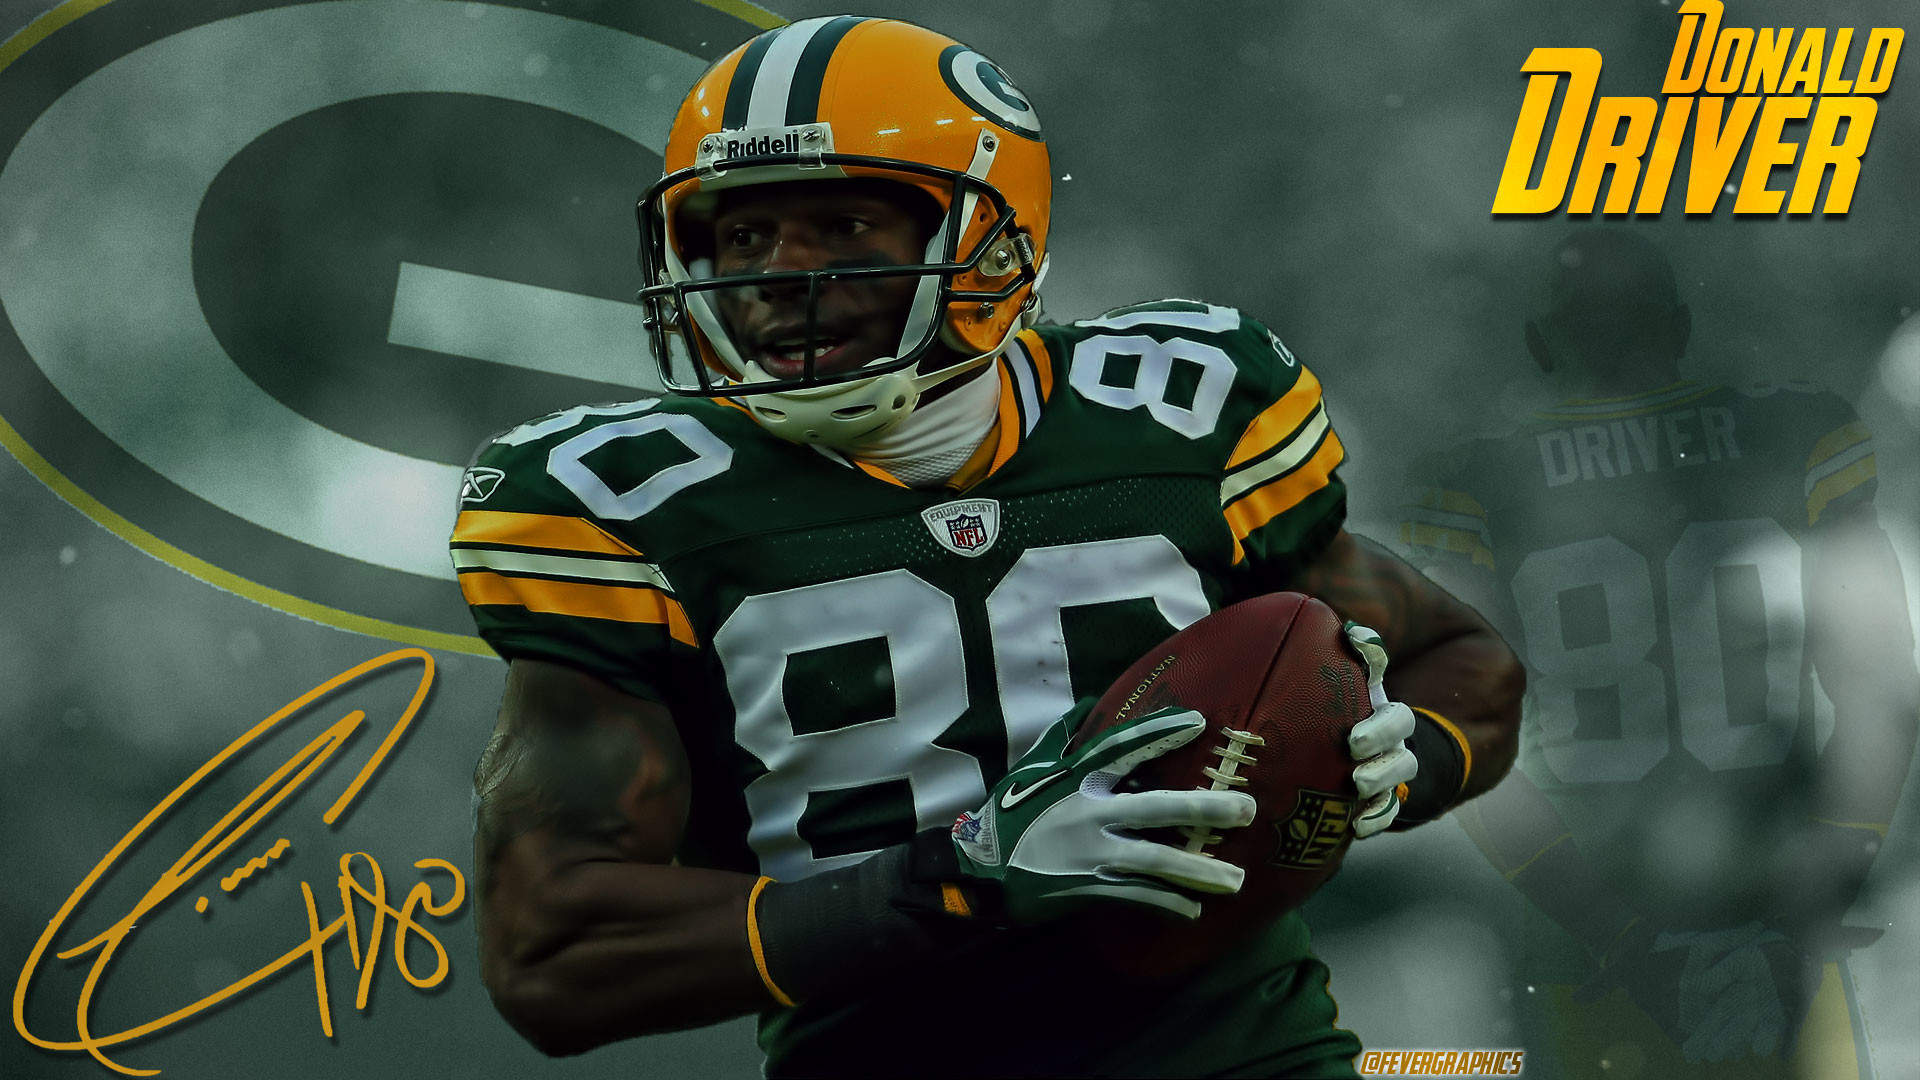 1920x1080 Packers sub, I whipped up a Donald Driver wallpaper for whoever wants to  use it. I take requests and such, I hope you guys like it!